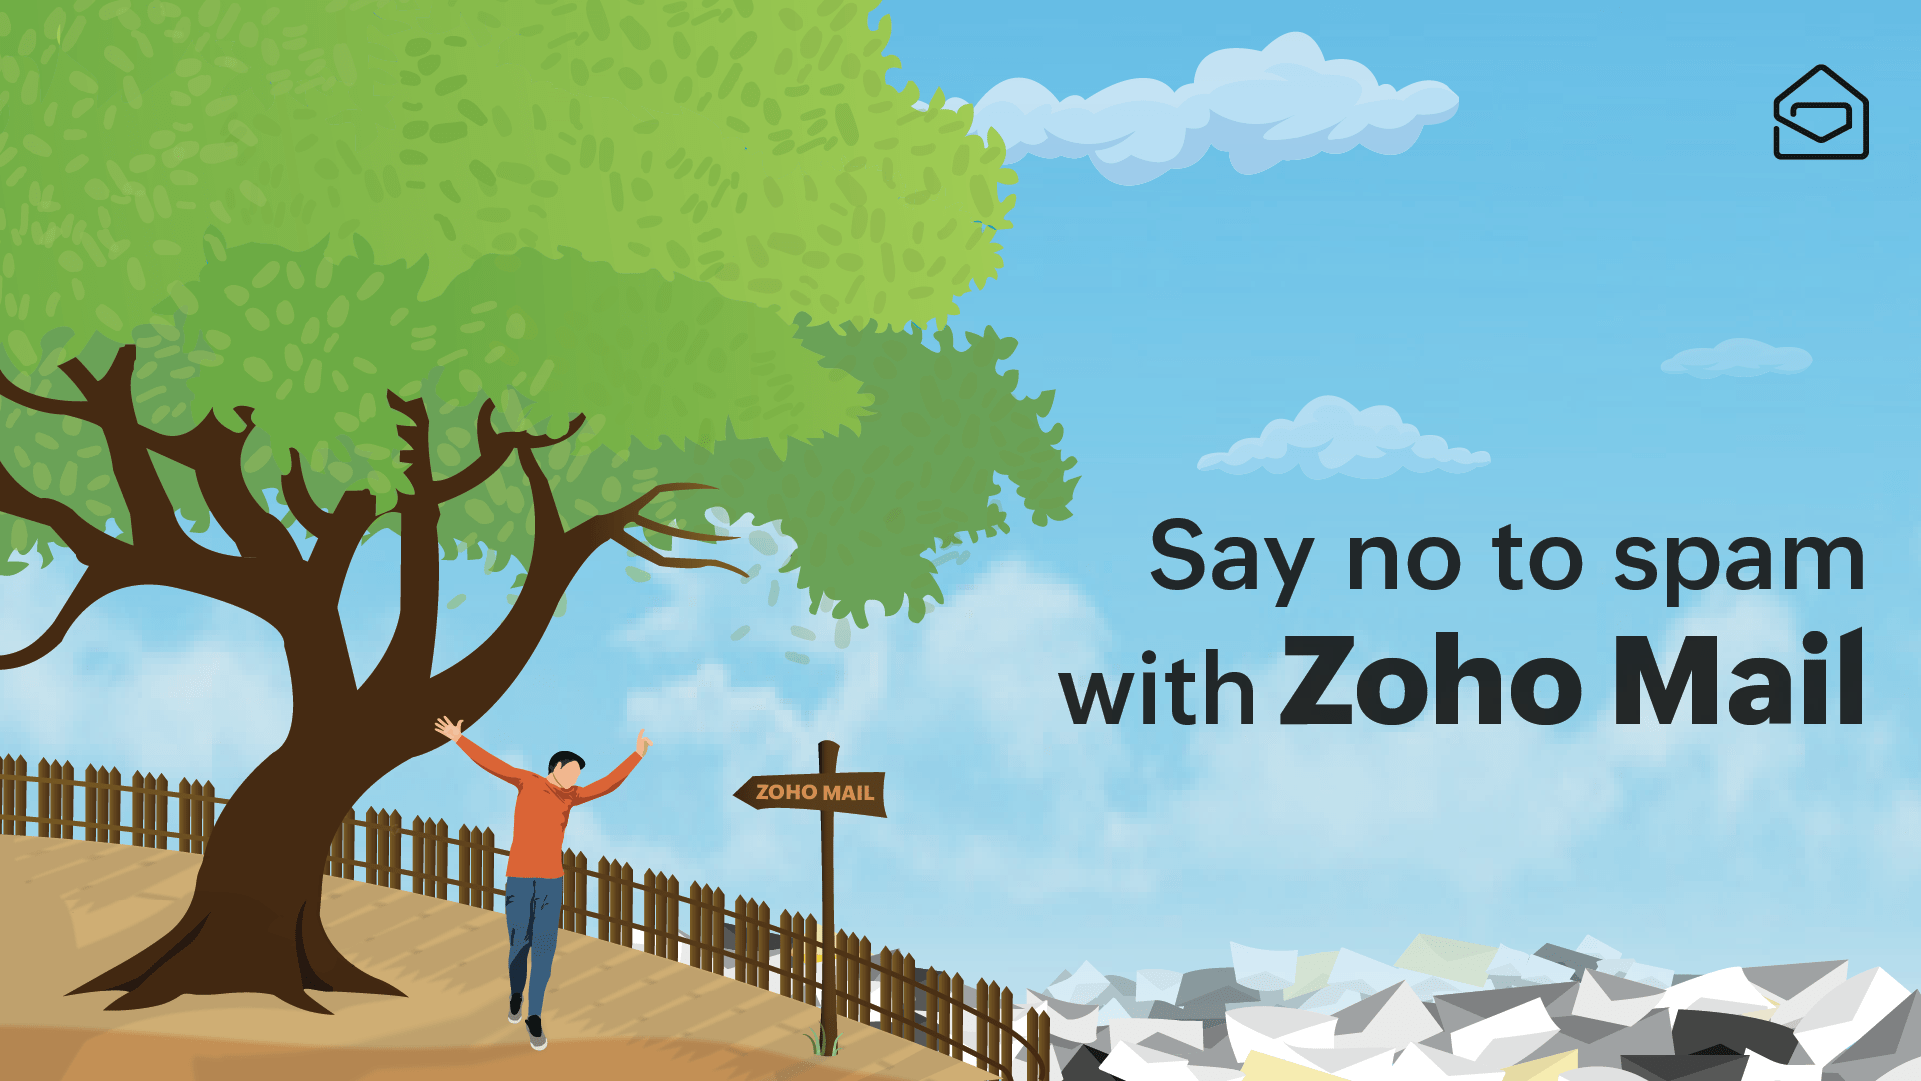 Zoho mail spam protection